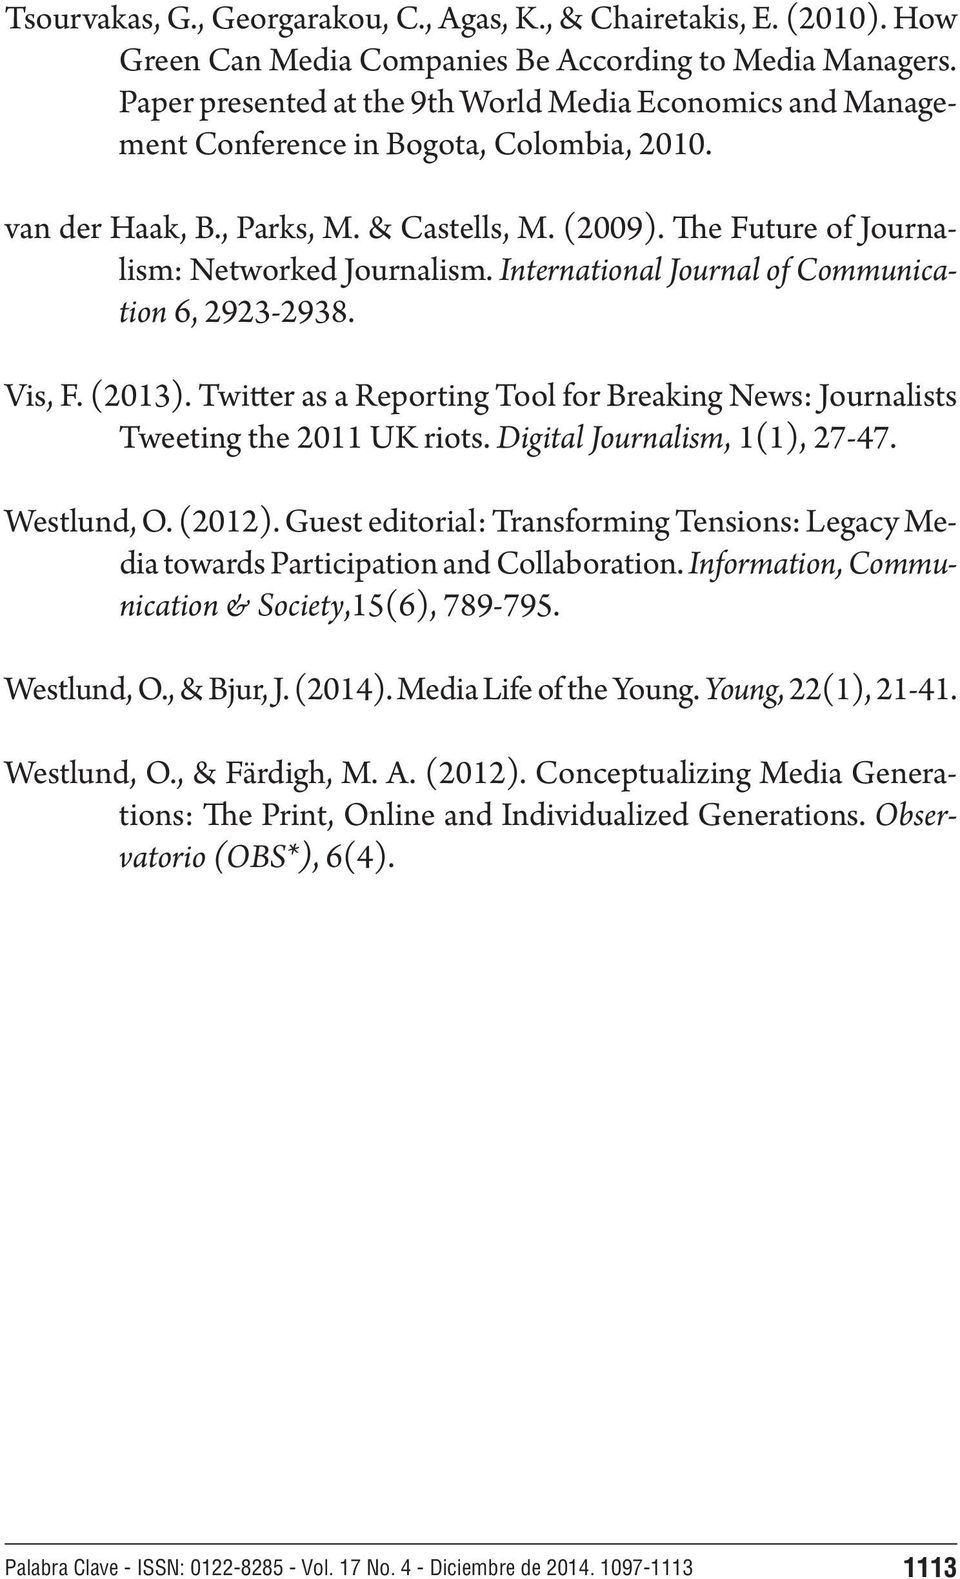 International Journal of Communication 6, 2923-2938. Vis, F. (2013). Twitter as a Reporting Tool for Breaking News: Journalists Tweeting the 2011 UK riots. Digital Journalism, 1(1), 27-47.